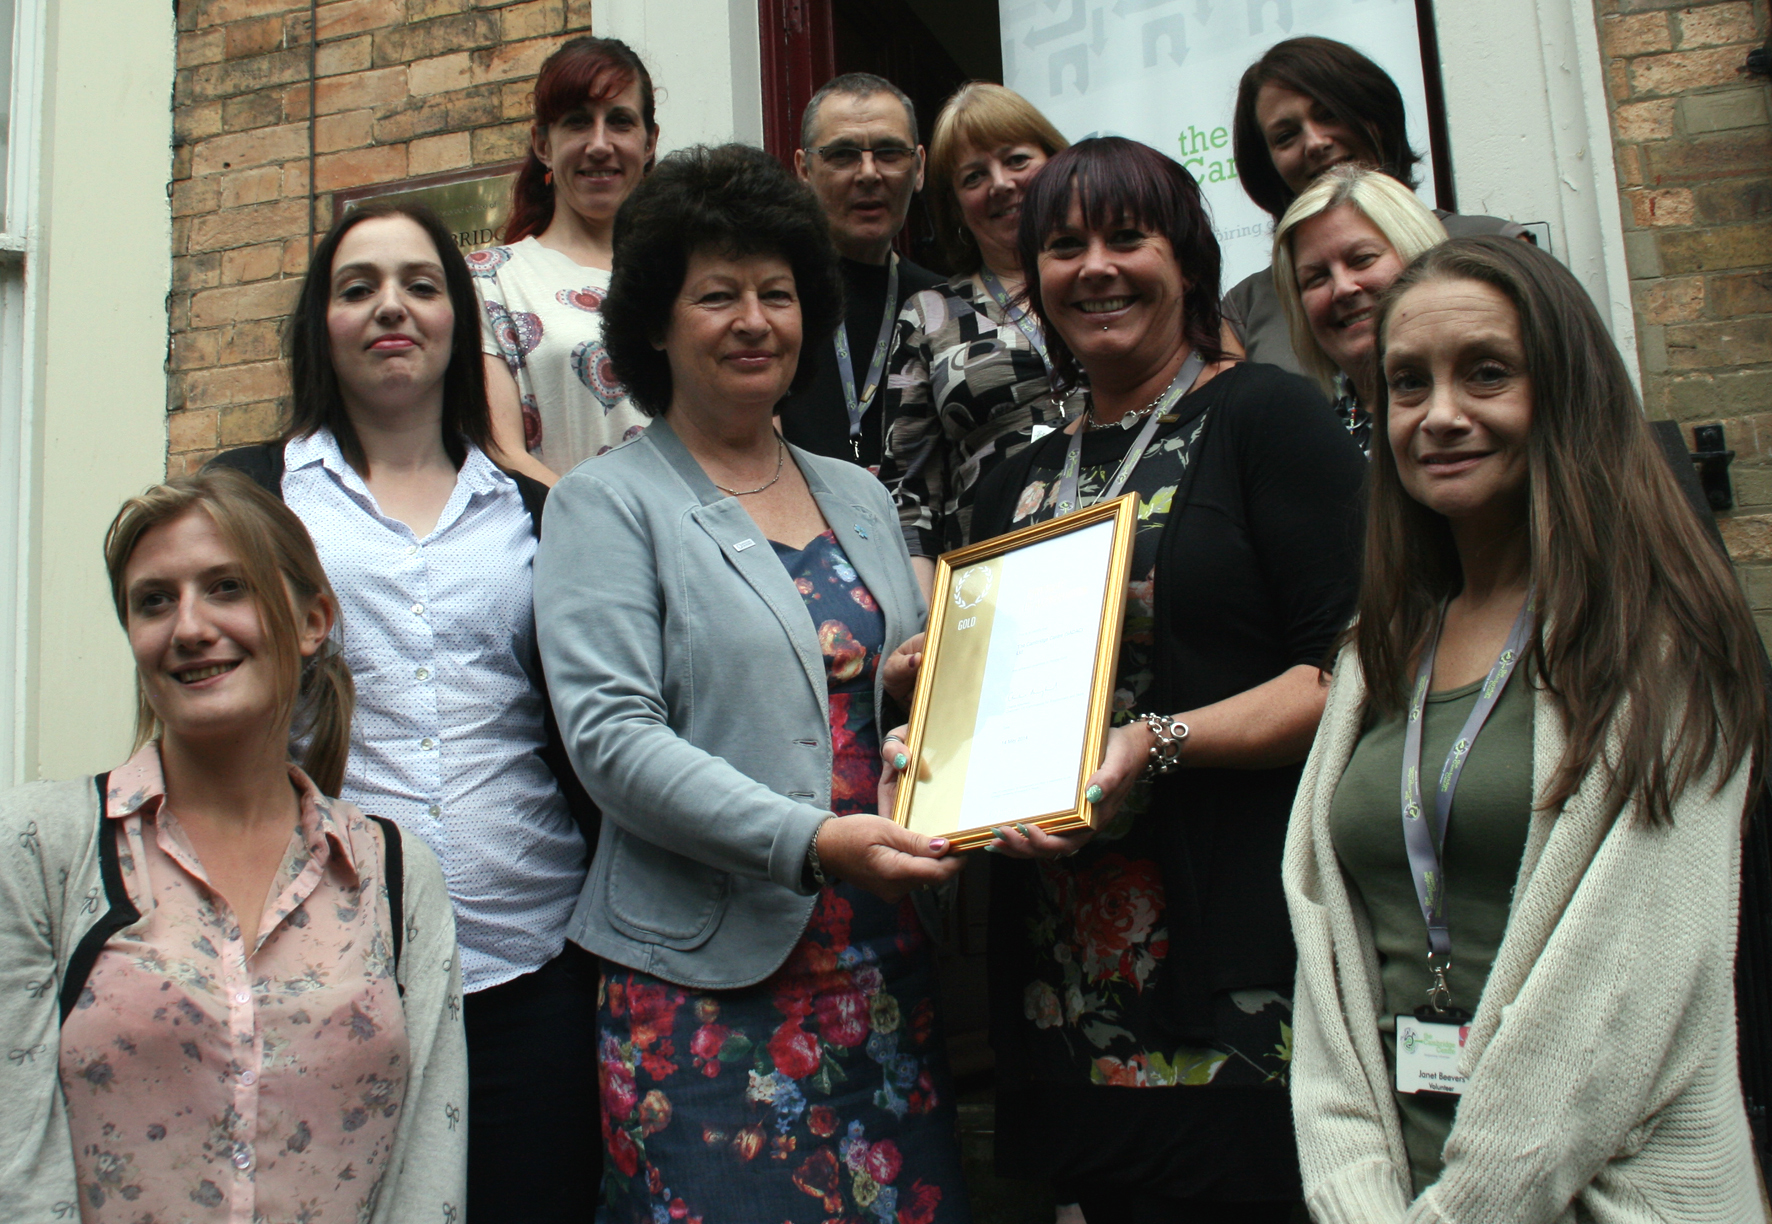 Anne Stockdale, Investors in People Specialist for the region, left, and Cambridge Centre Chief Executive Nikki Orrell, right, with the Investors in People Gold certificate, surrounded by staff from the centre.